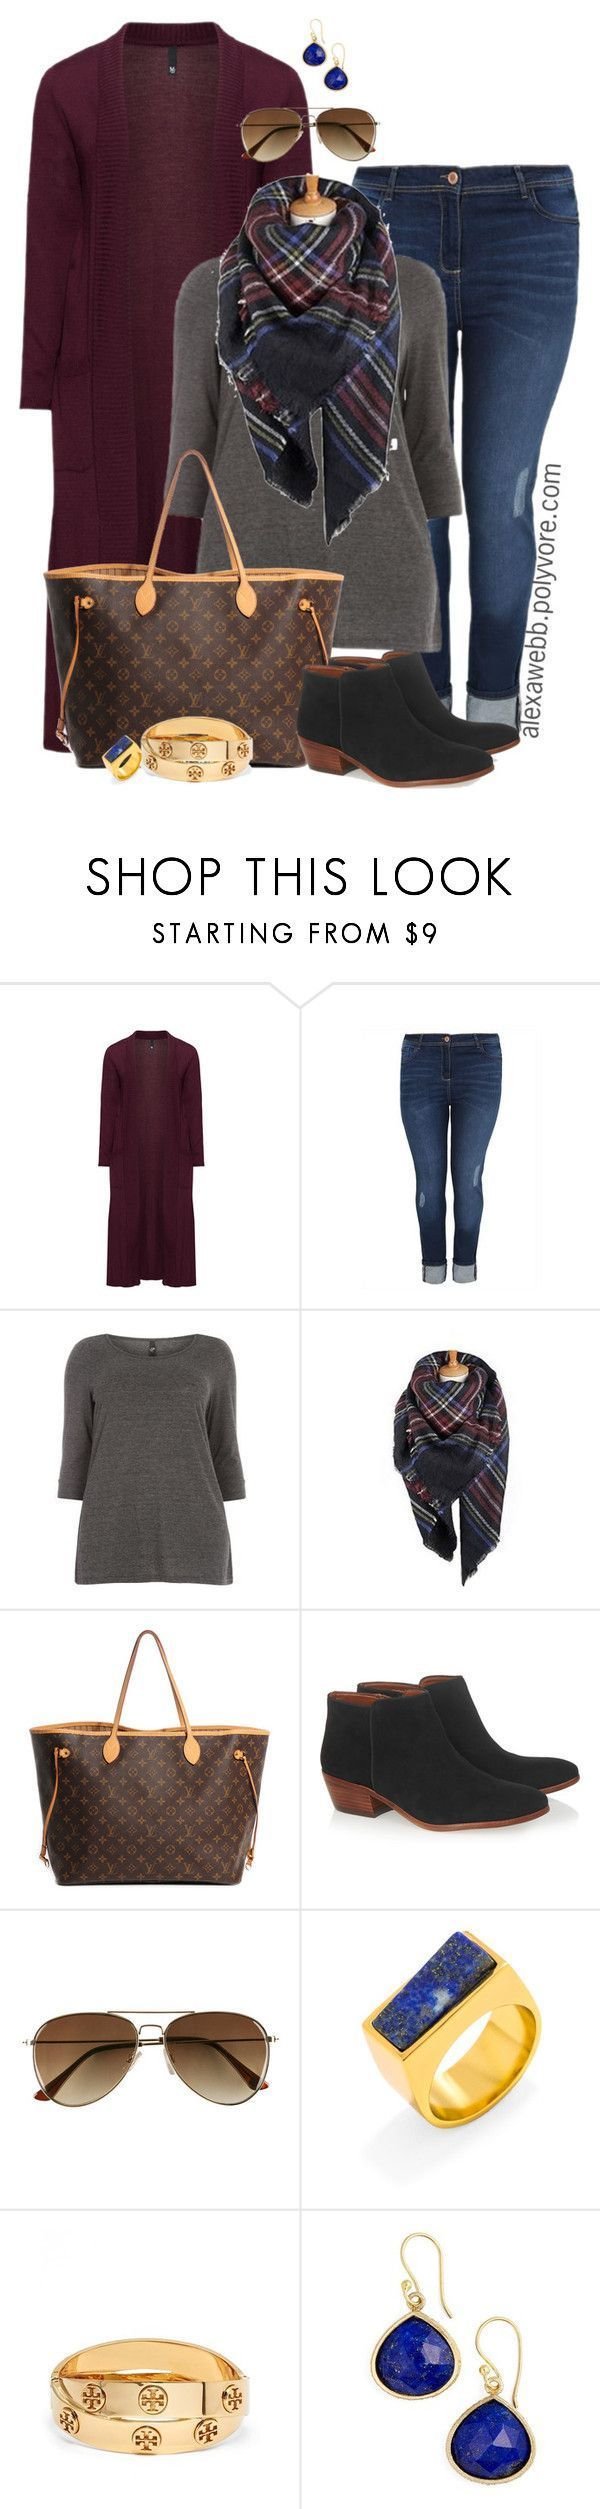 Plus Size – Fall Casual Outfit by alexawebb on Polyvore /alexandrawebb…